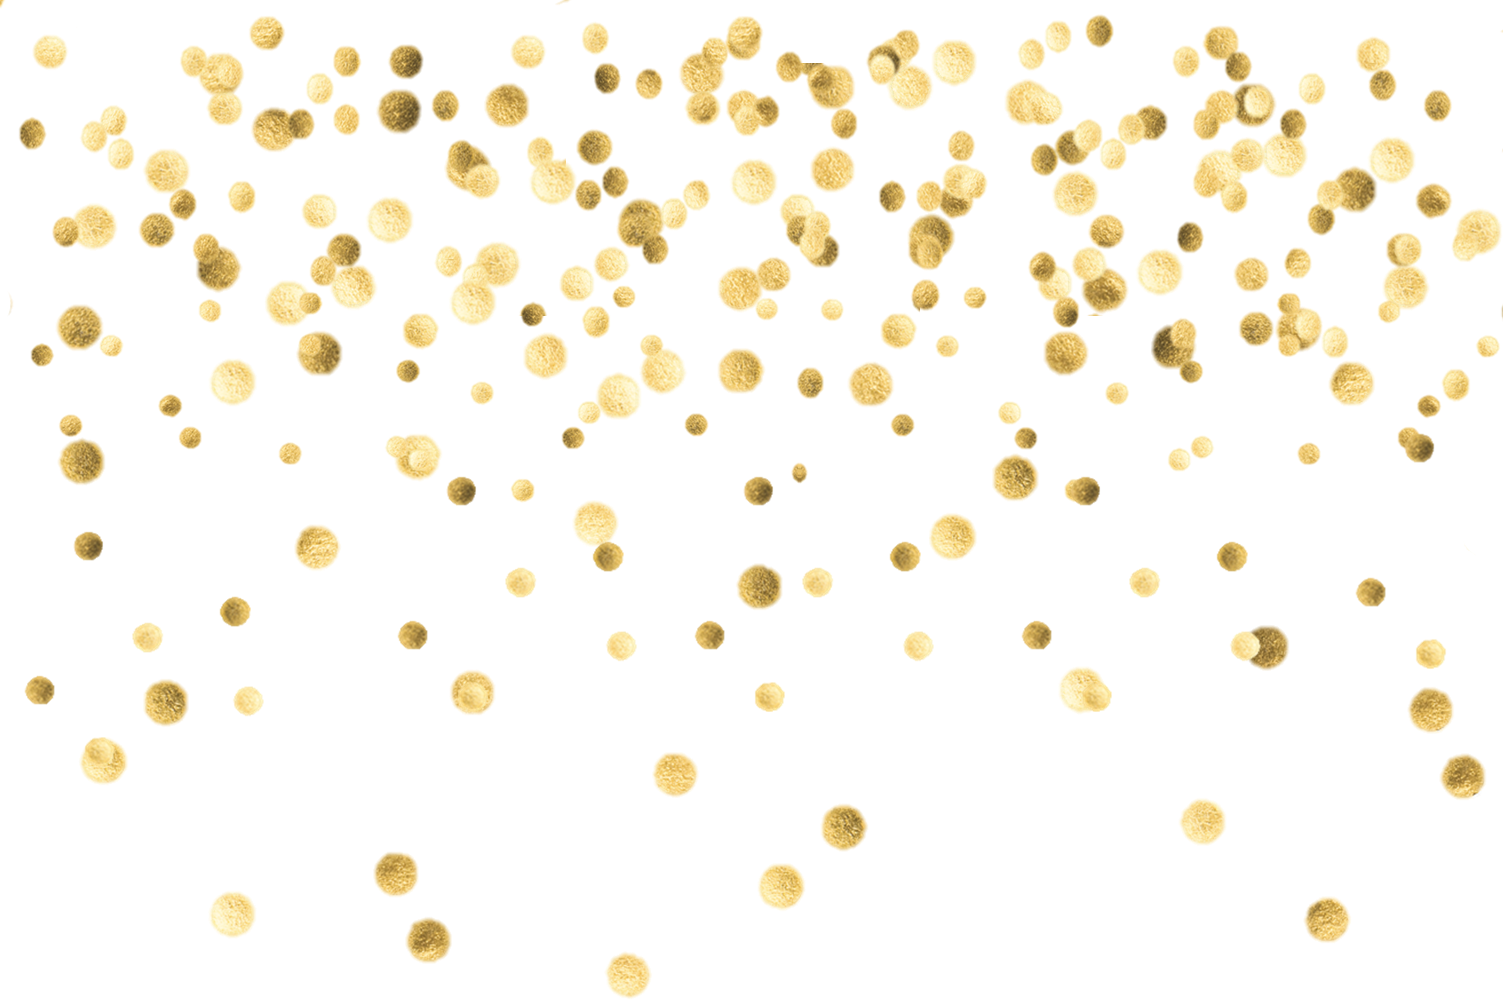 Gold Sparkle Png Transparent - Gold Confetti Transparent Background (1503x1005), Png Download